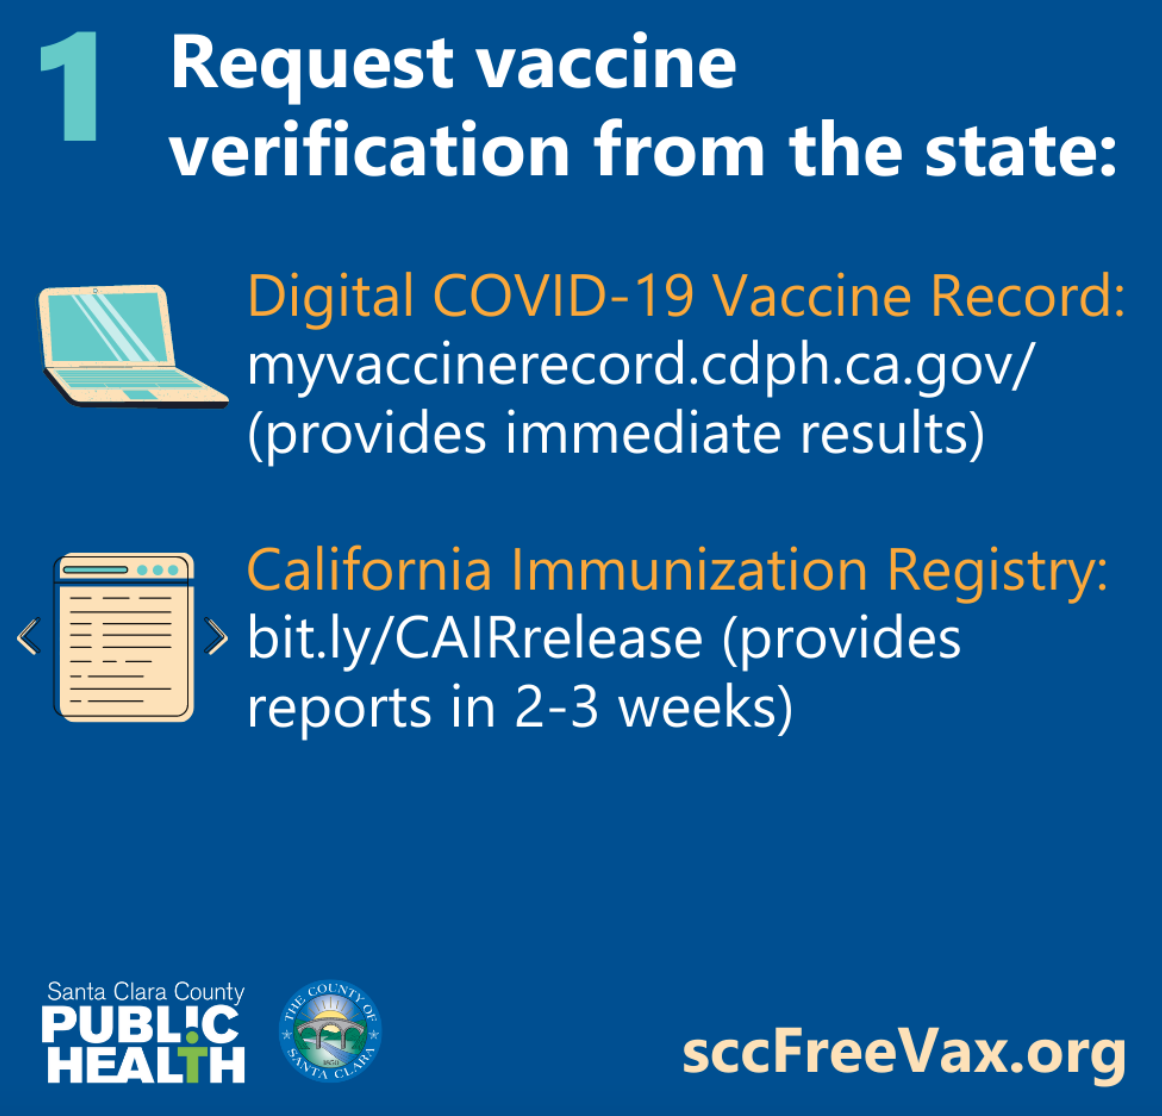 Request vaccine verification from the state